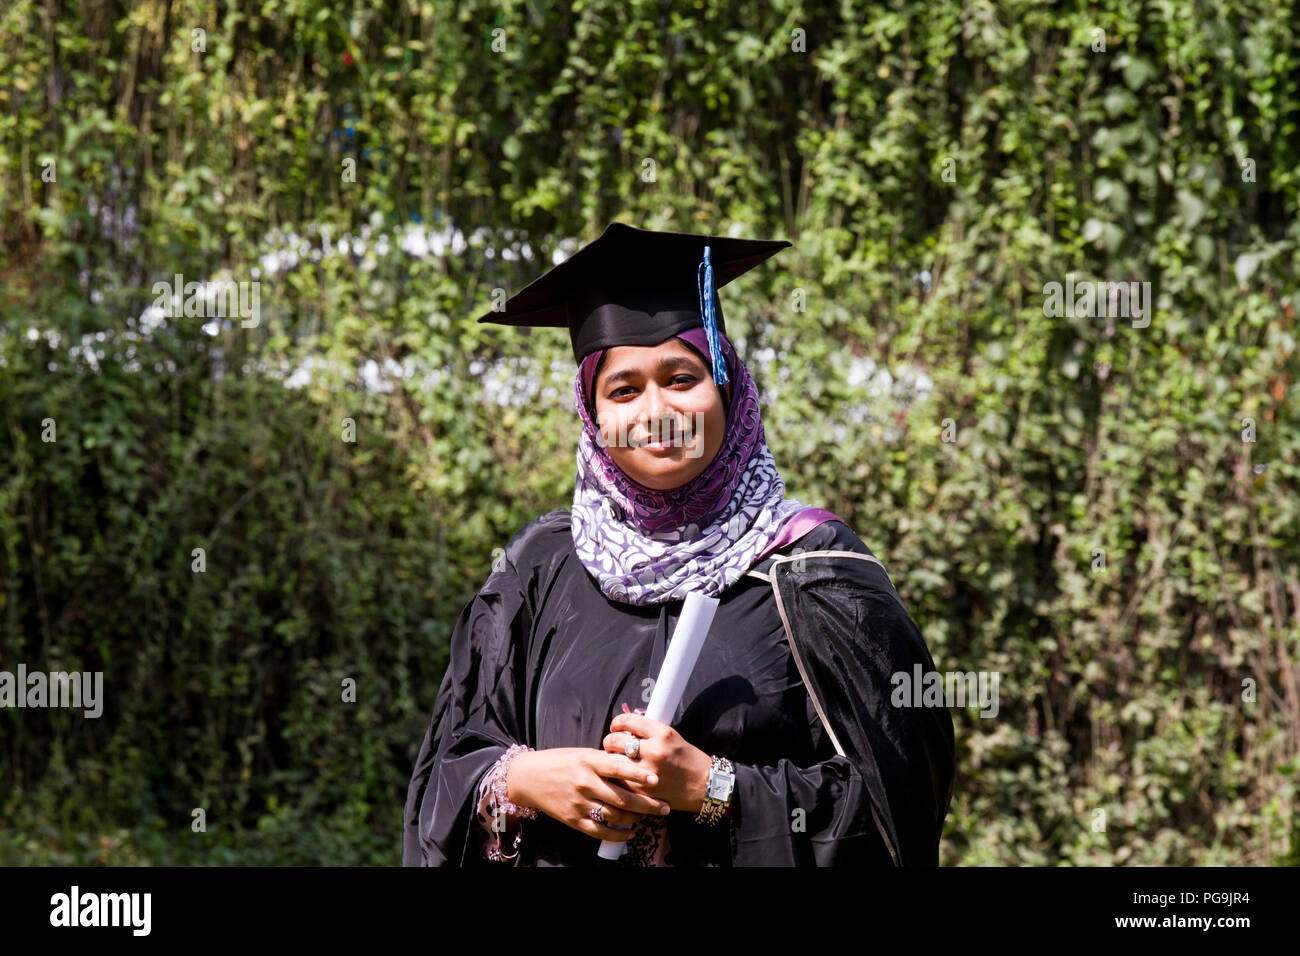 Convocation Day Stock Photos & Convocation Day Stock Images - Alamy